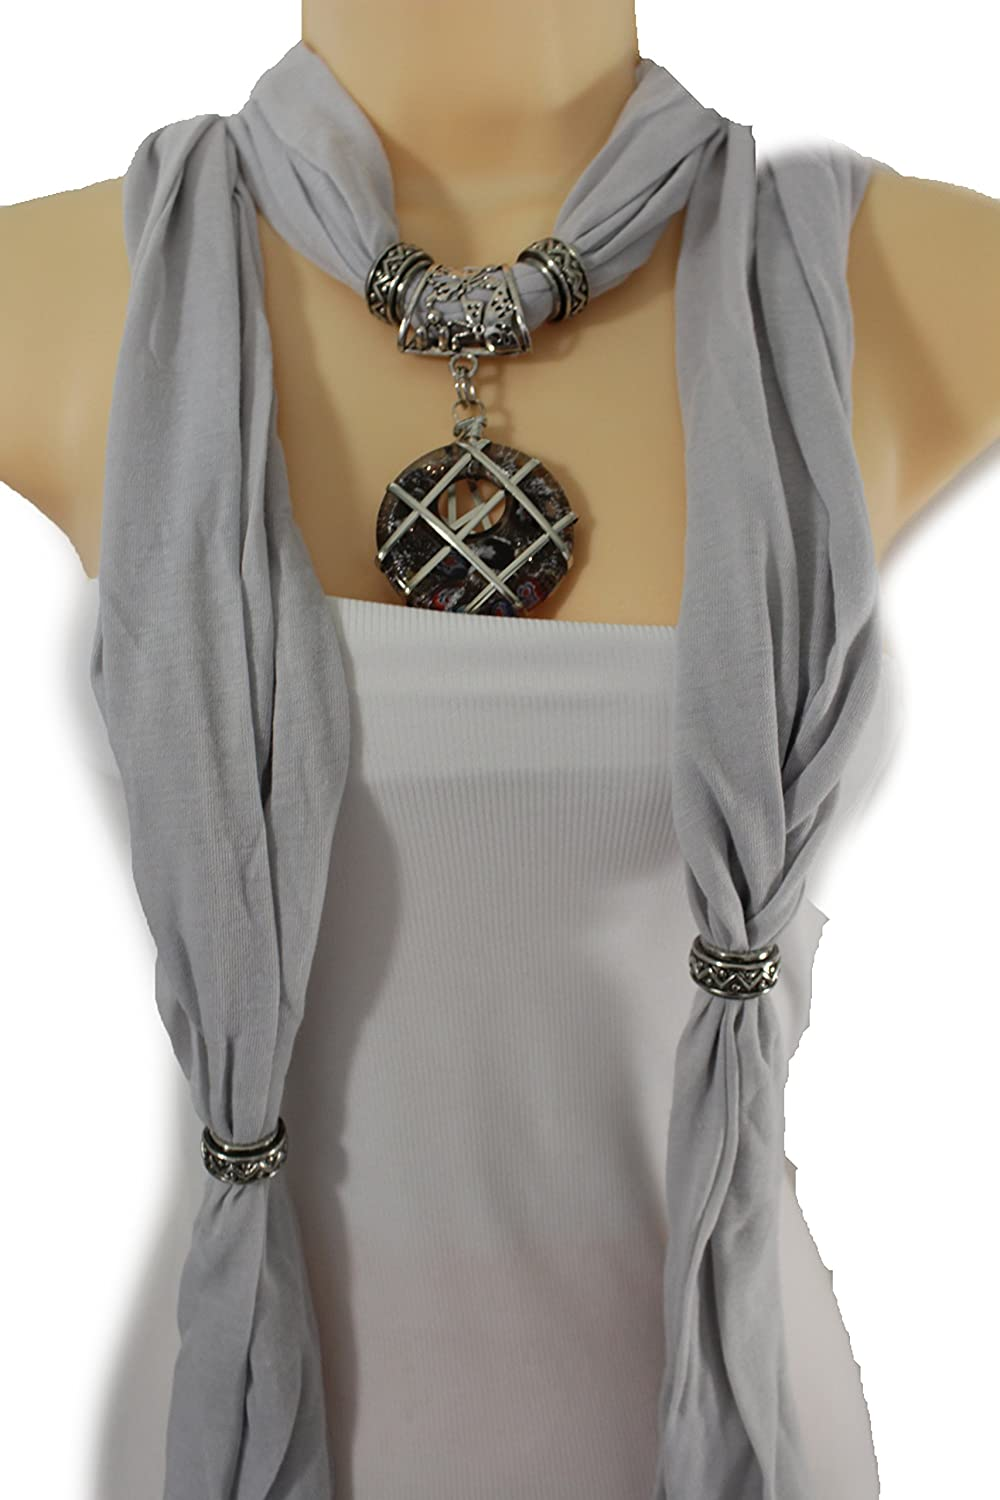 TFJ Women Gray Fashion Long Necklace Scarf Soft Fabric Floral Roses Charm Pendant